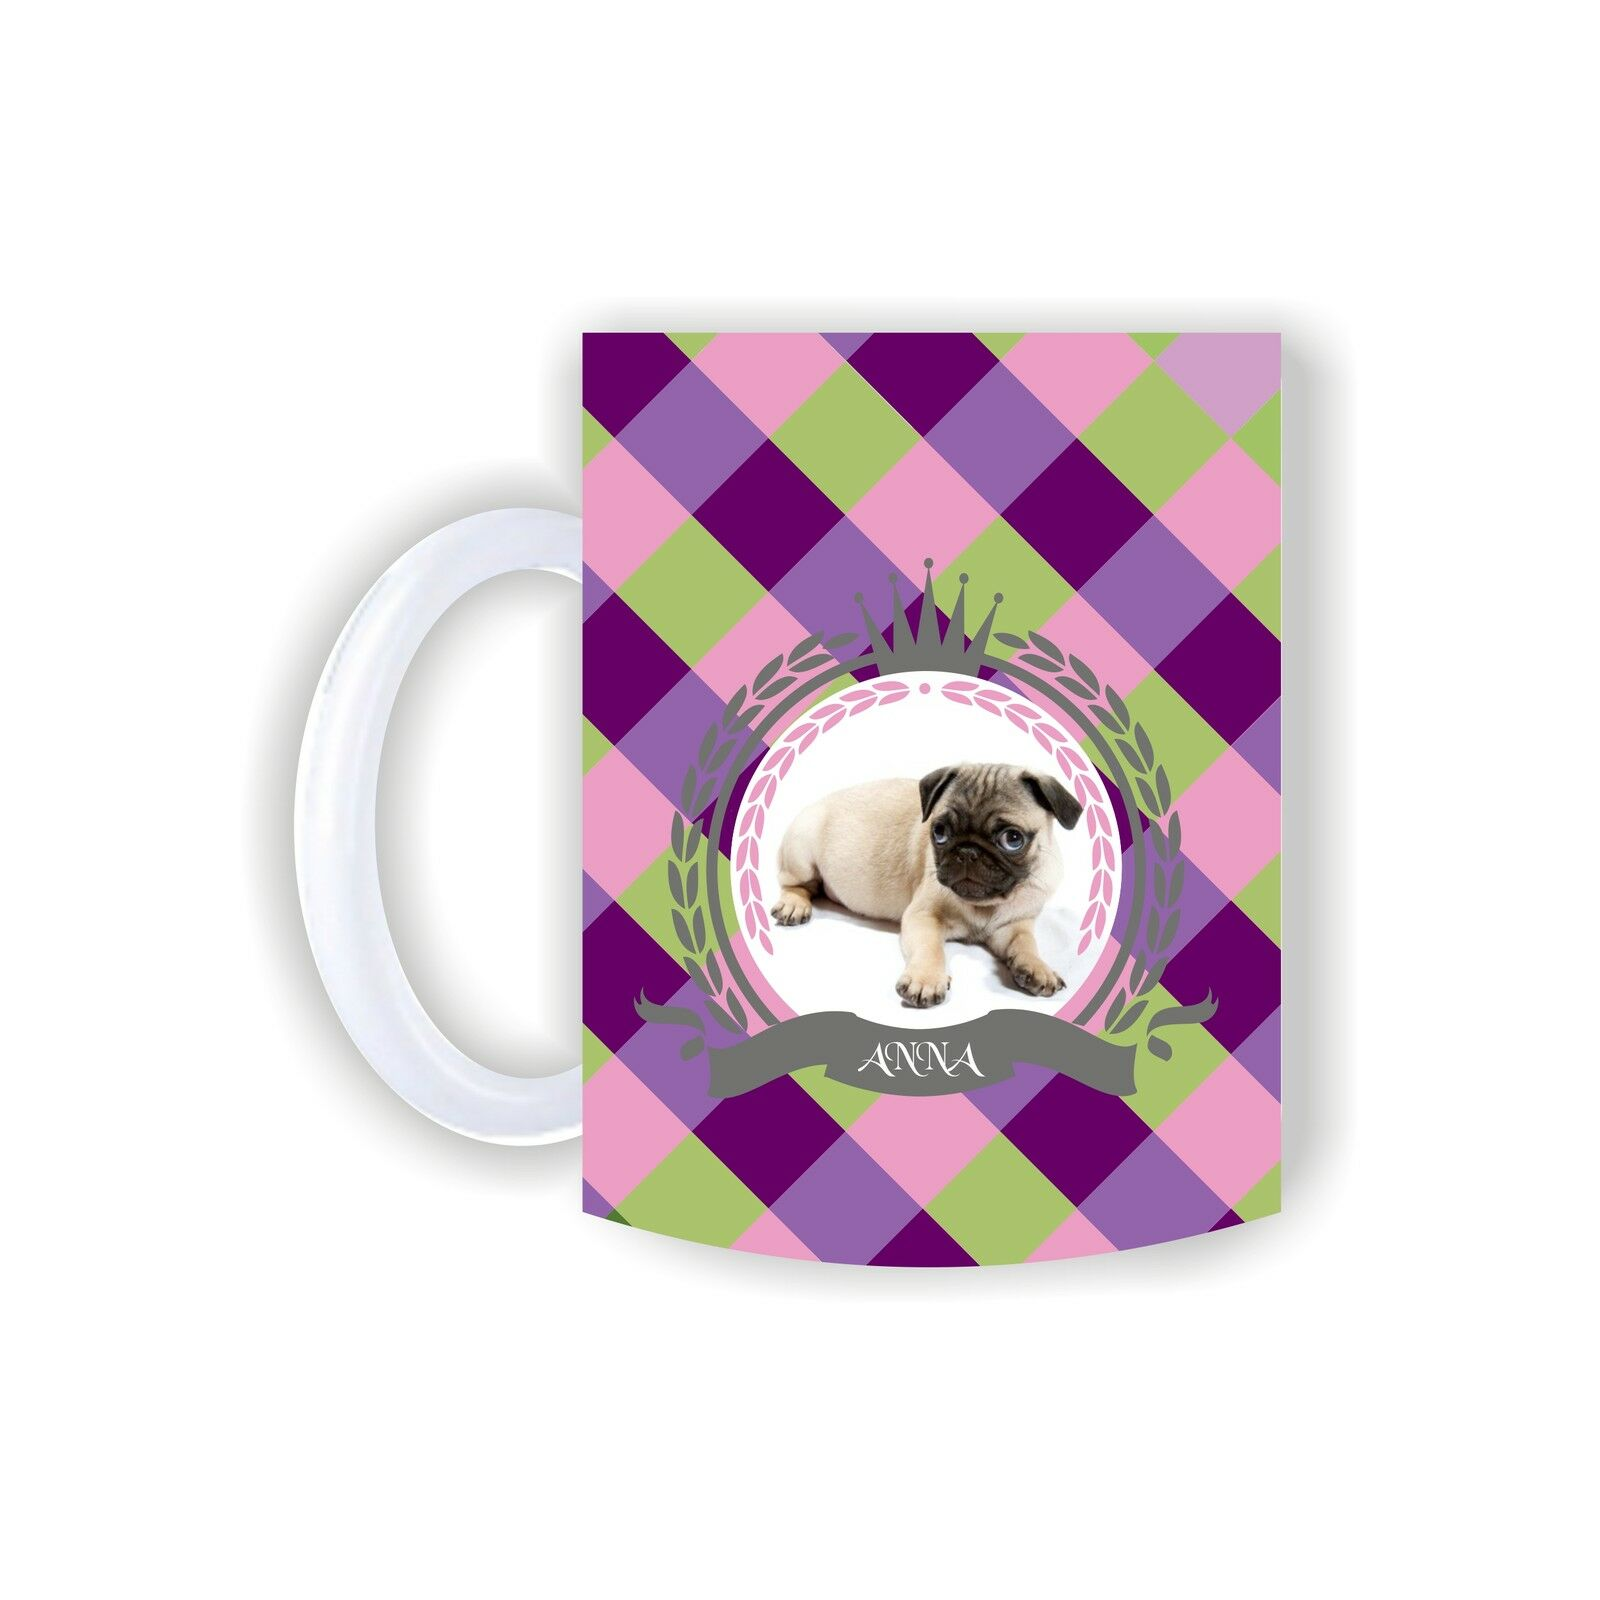 Mops-Tasse with Names English Bulldog French Bully Cup Mug Dog Photo